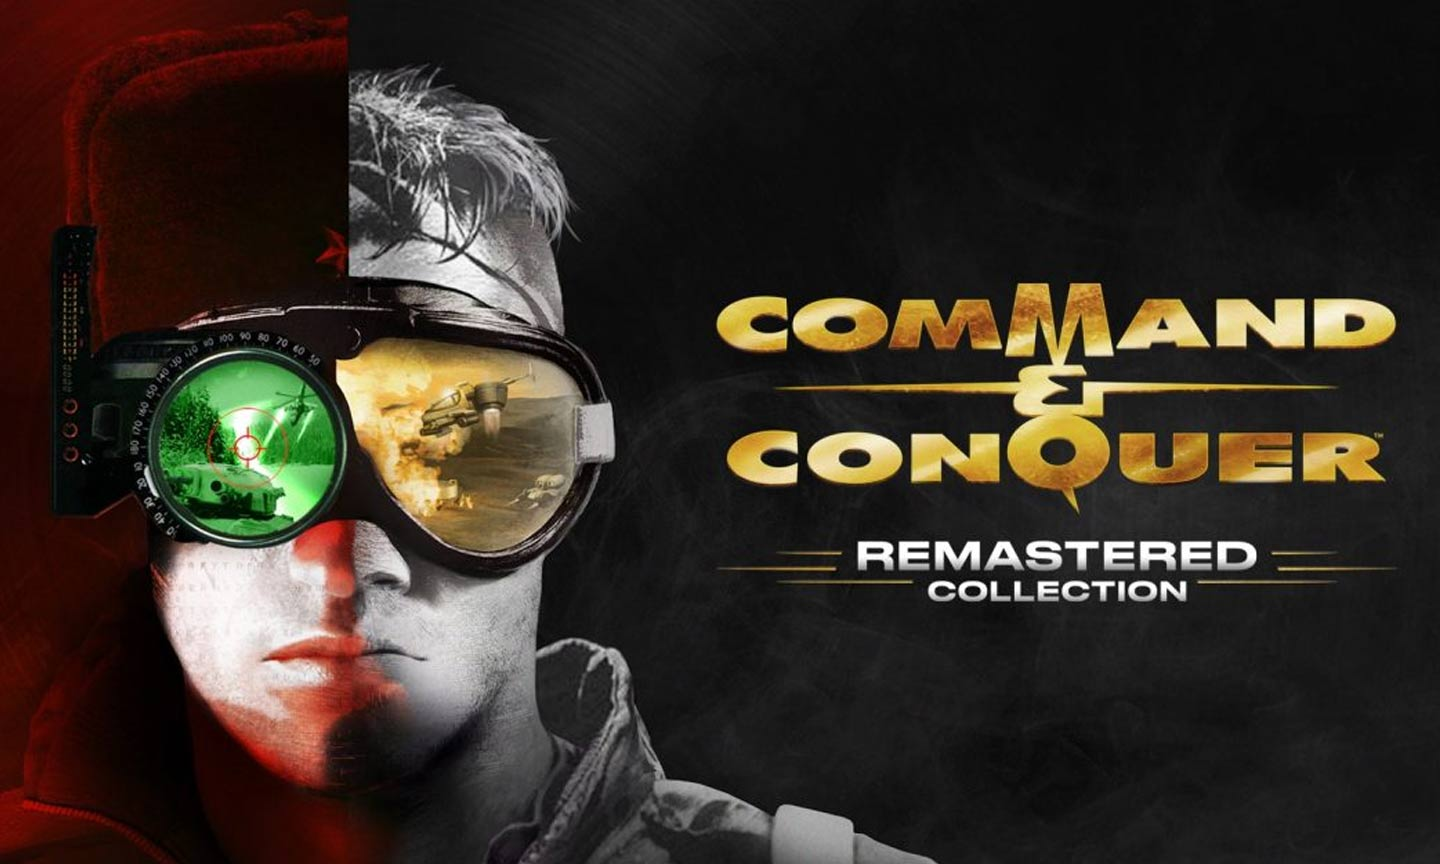 Command and Conquer Remastered - Collection